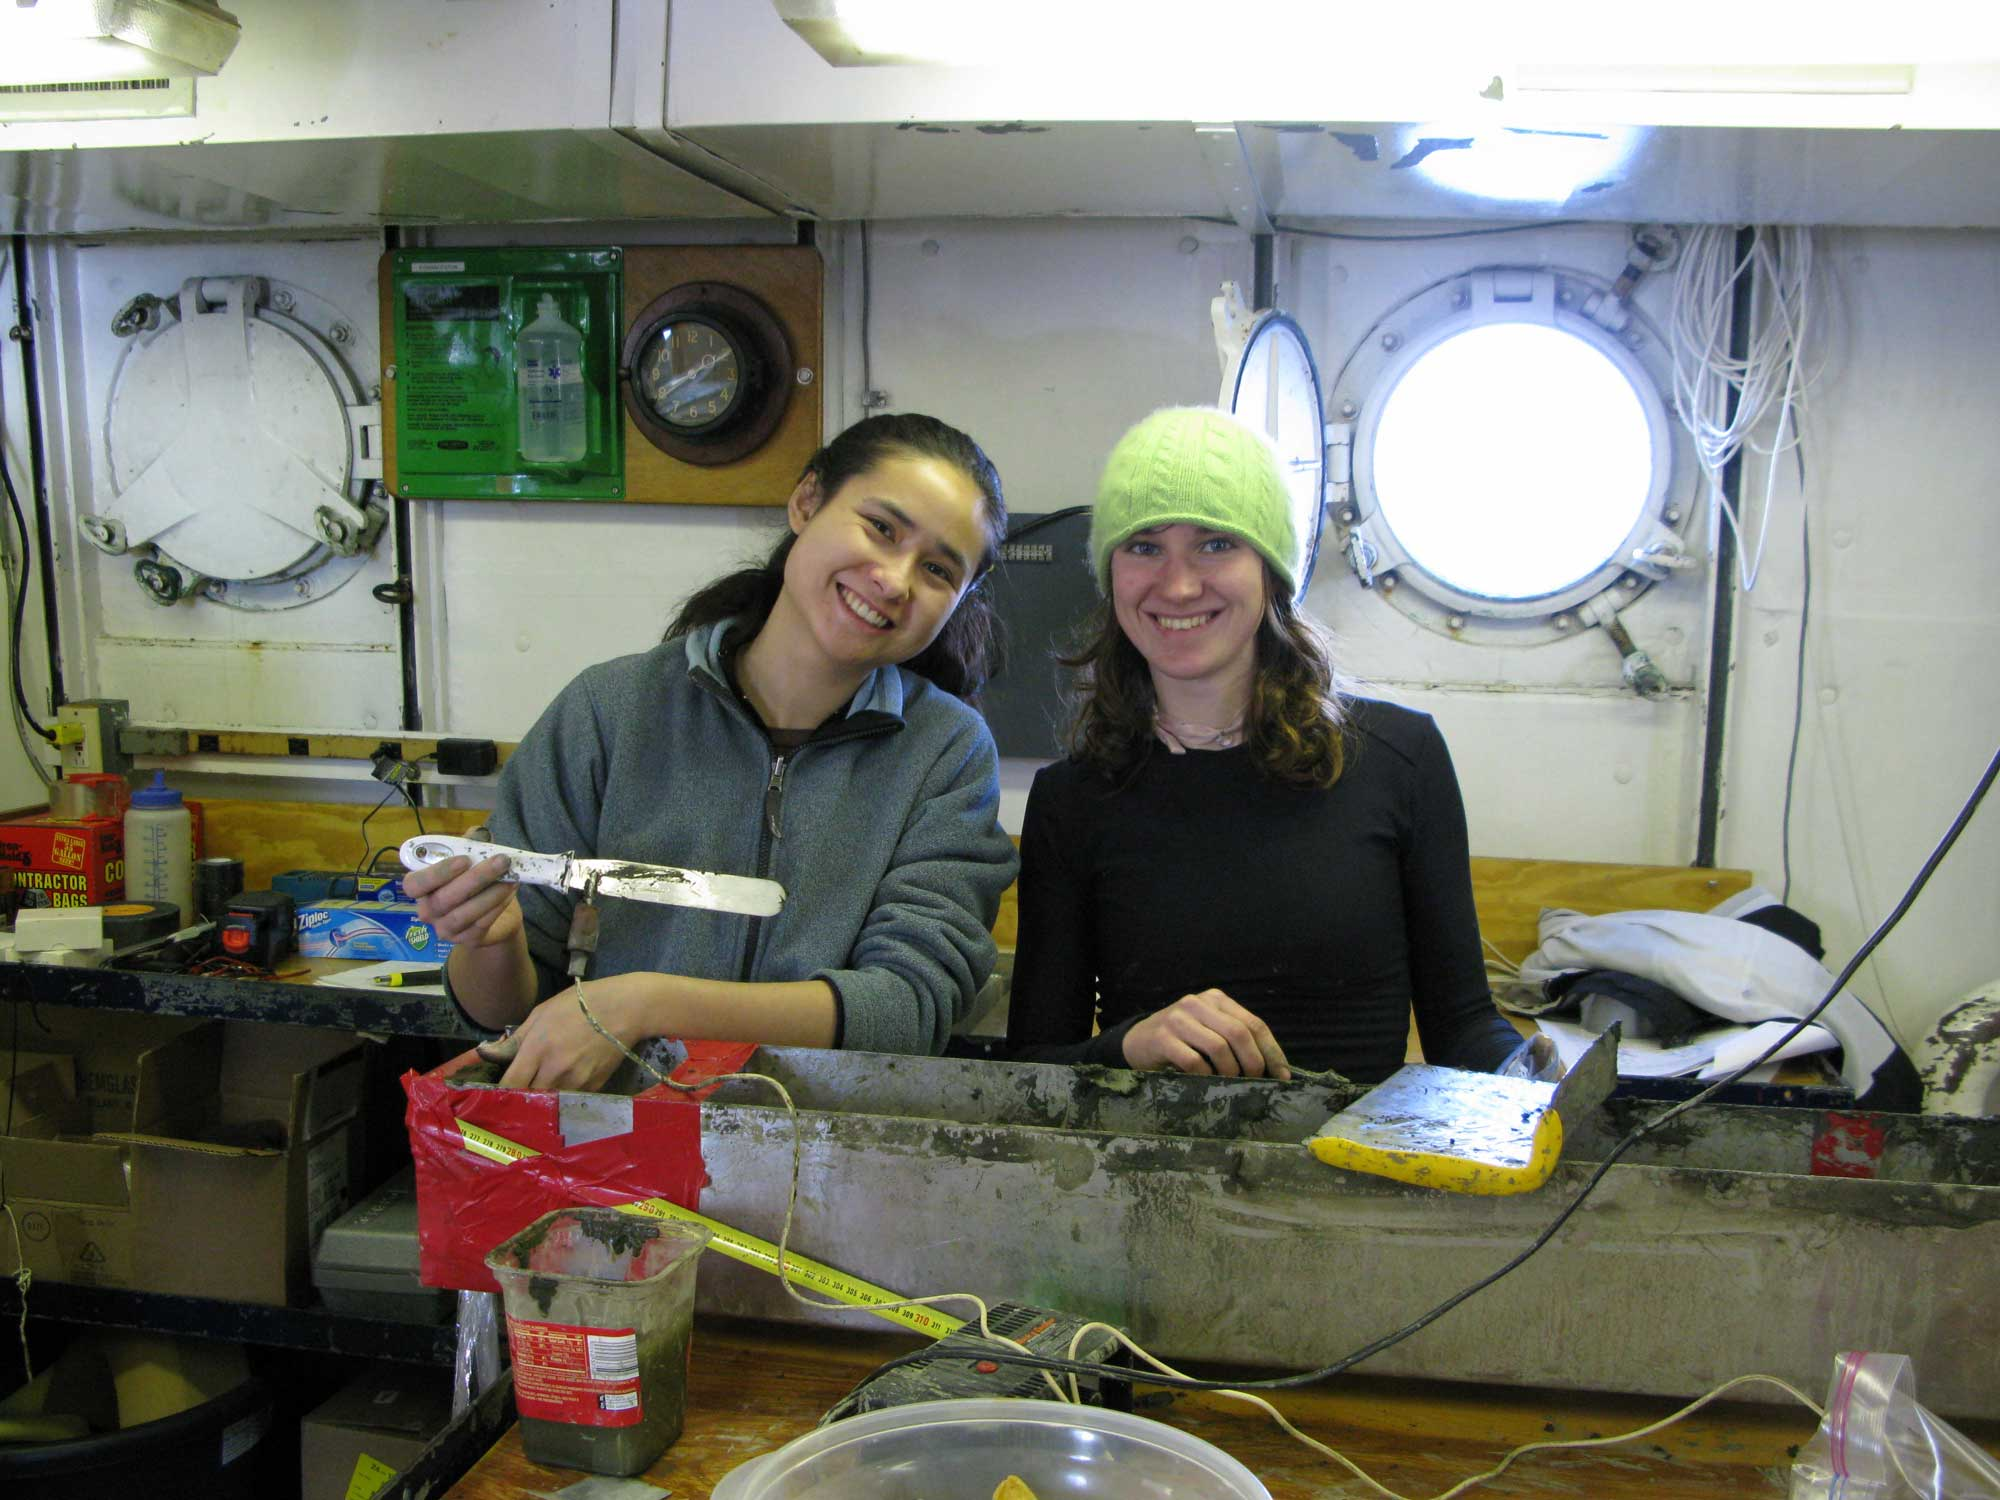 Former University of Michigan graduate student Karla Knudsen, left, and former U-M undergraduate Athena Eyster sample deep-sea sediment collected in 2009 with a coring device beneath the Santa Barbara Channel in California. The sediments were used in a fish-scale analysis. Image credit: Ingrid Hendy